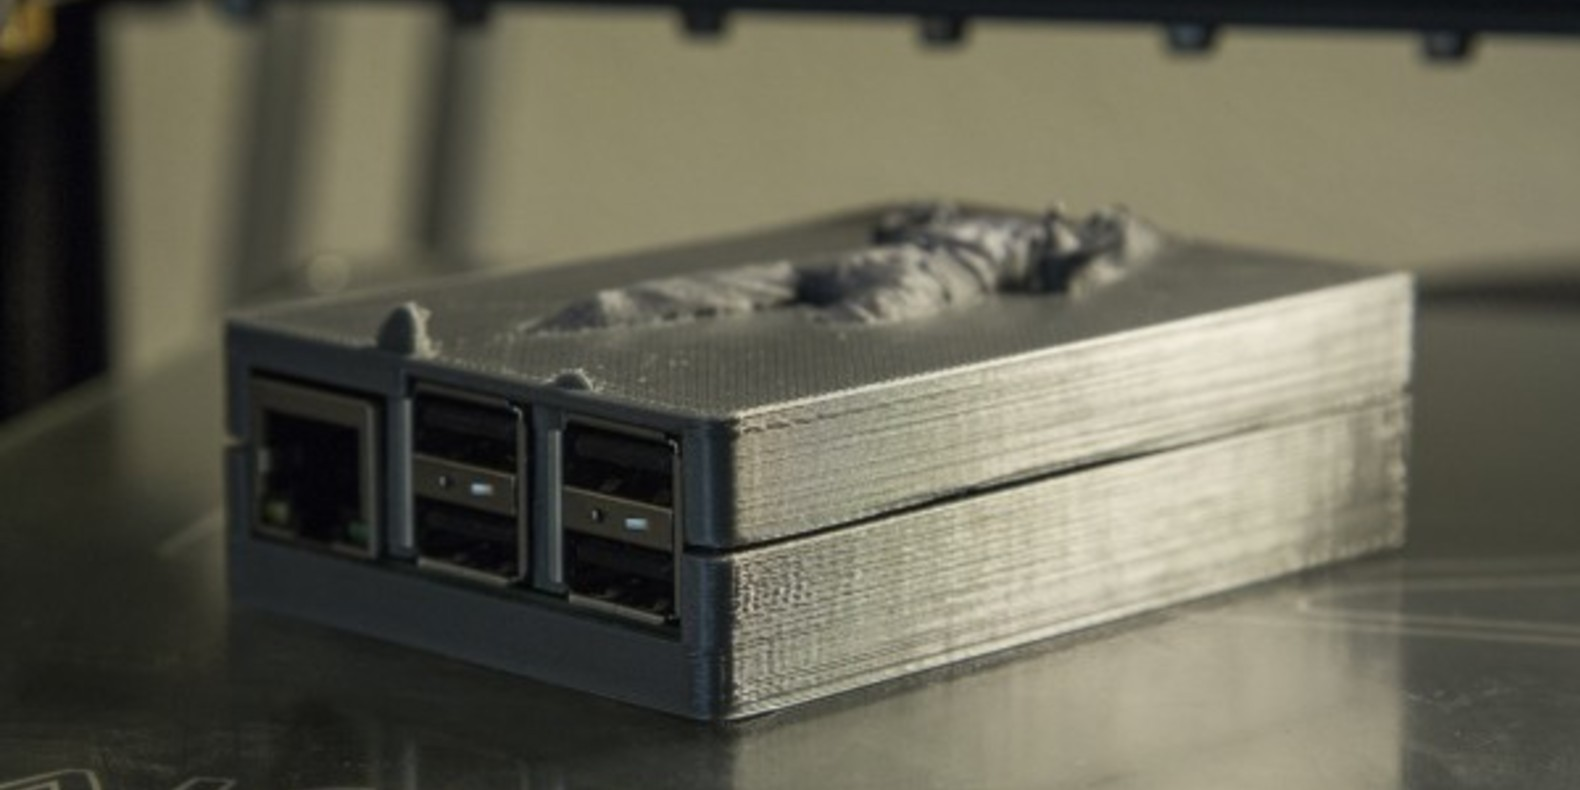 Han solo carbonite star wars raspberrypi 2 case 3D printer imprimé en 3D STL fichier Cults 2